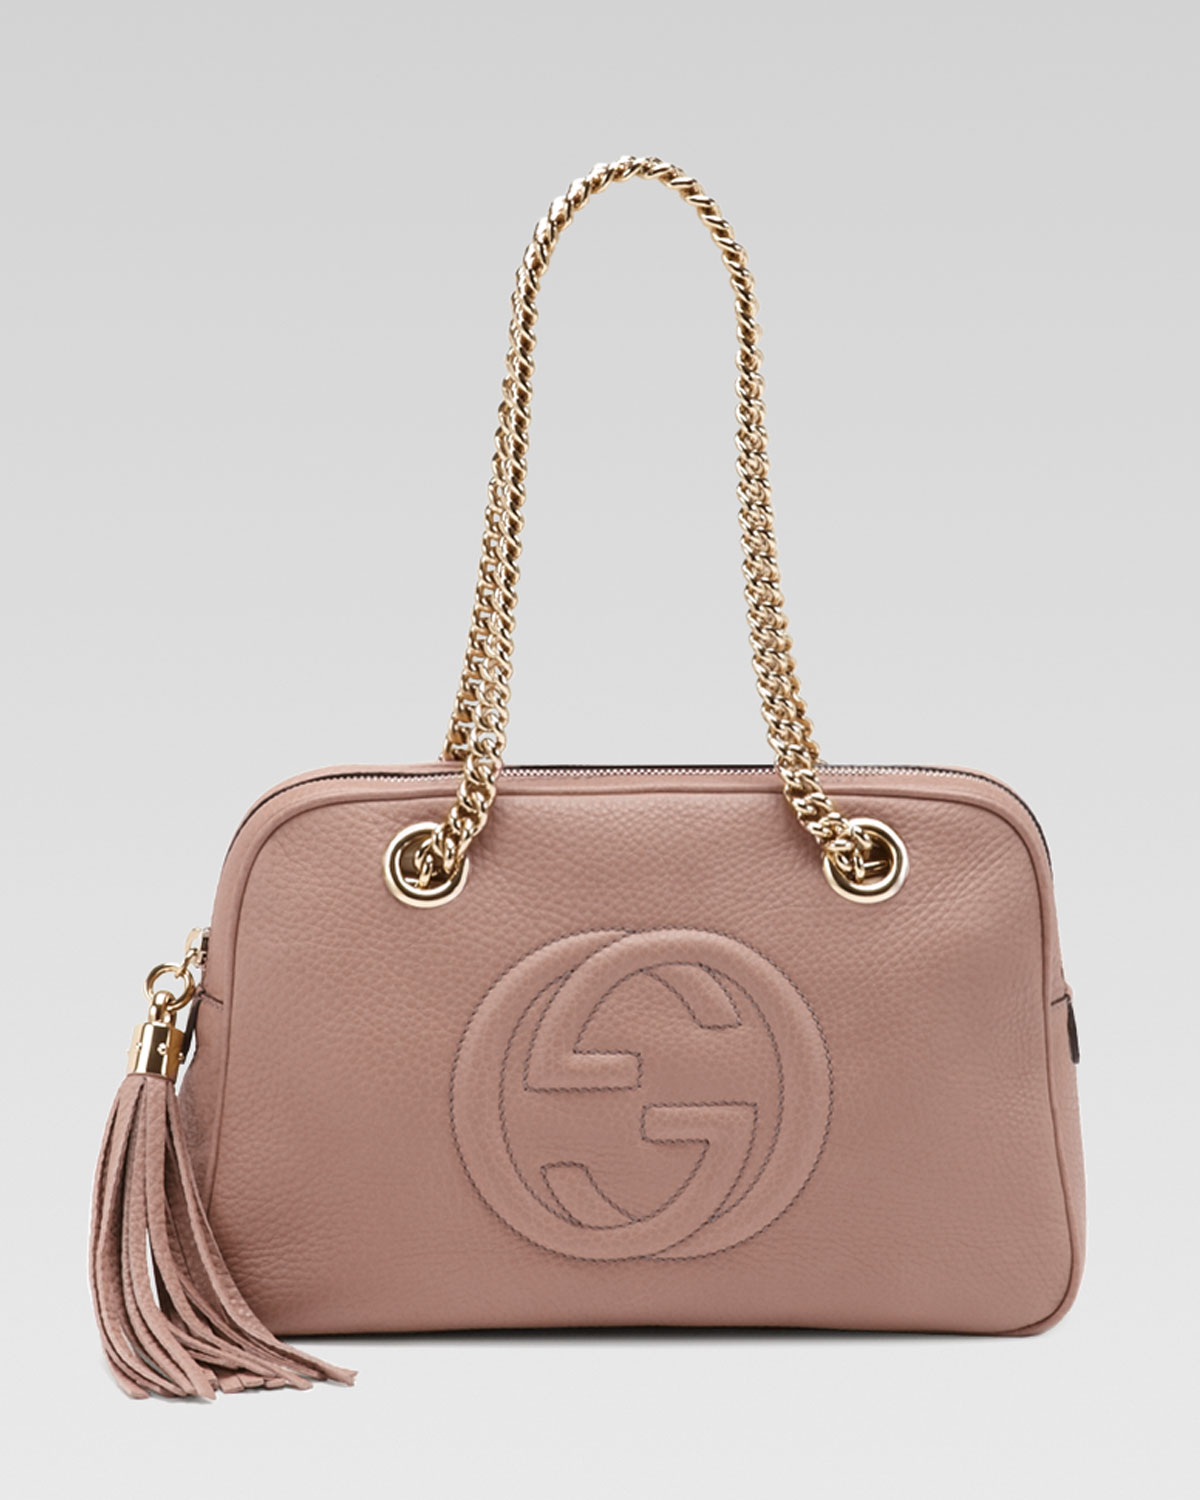 66326d2ff33 Gallery. Previously sold at  Bergdorf Goodman · Women s Gucci Soho Bag ...